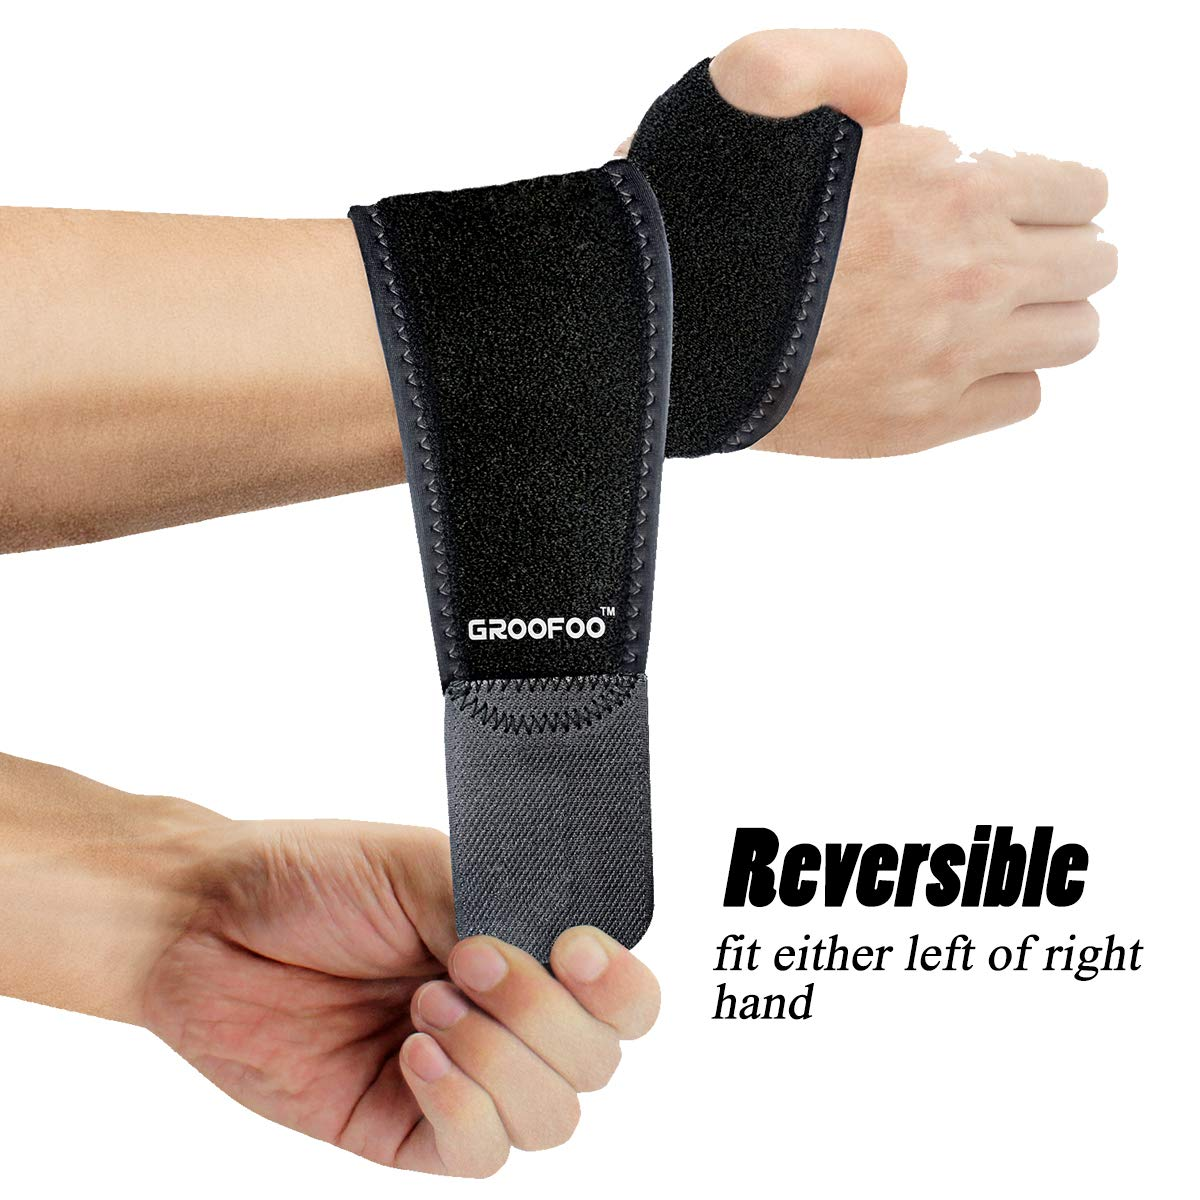 GROOFOO Adjustable Wrist Brace, Breathable Neoprene Support Wrap for Volleyball Badminton Tennis Weightlifting